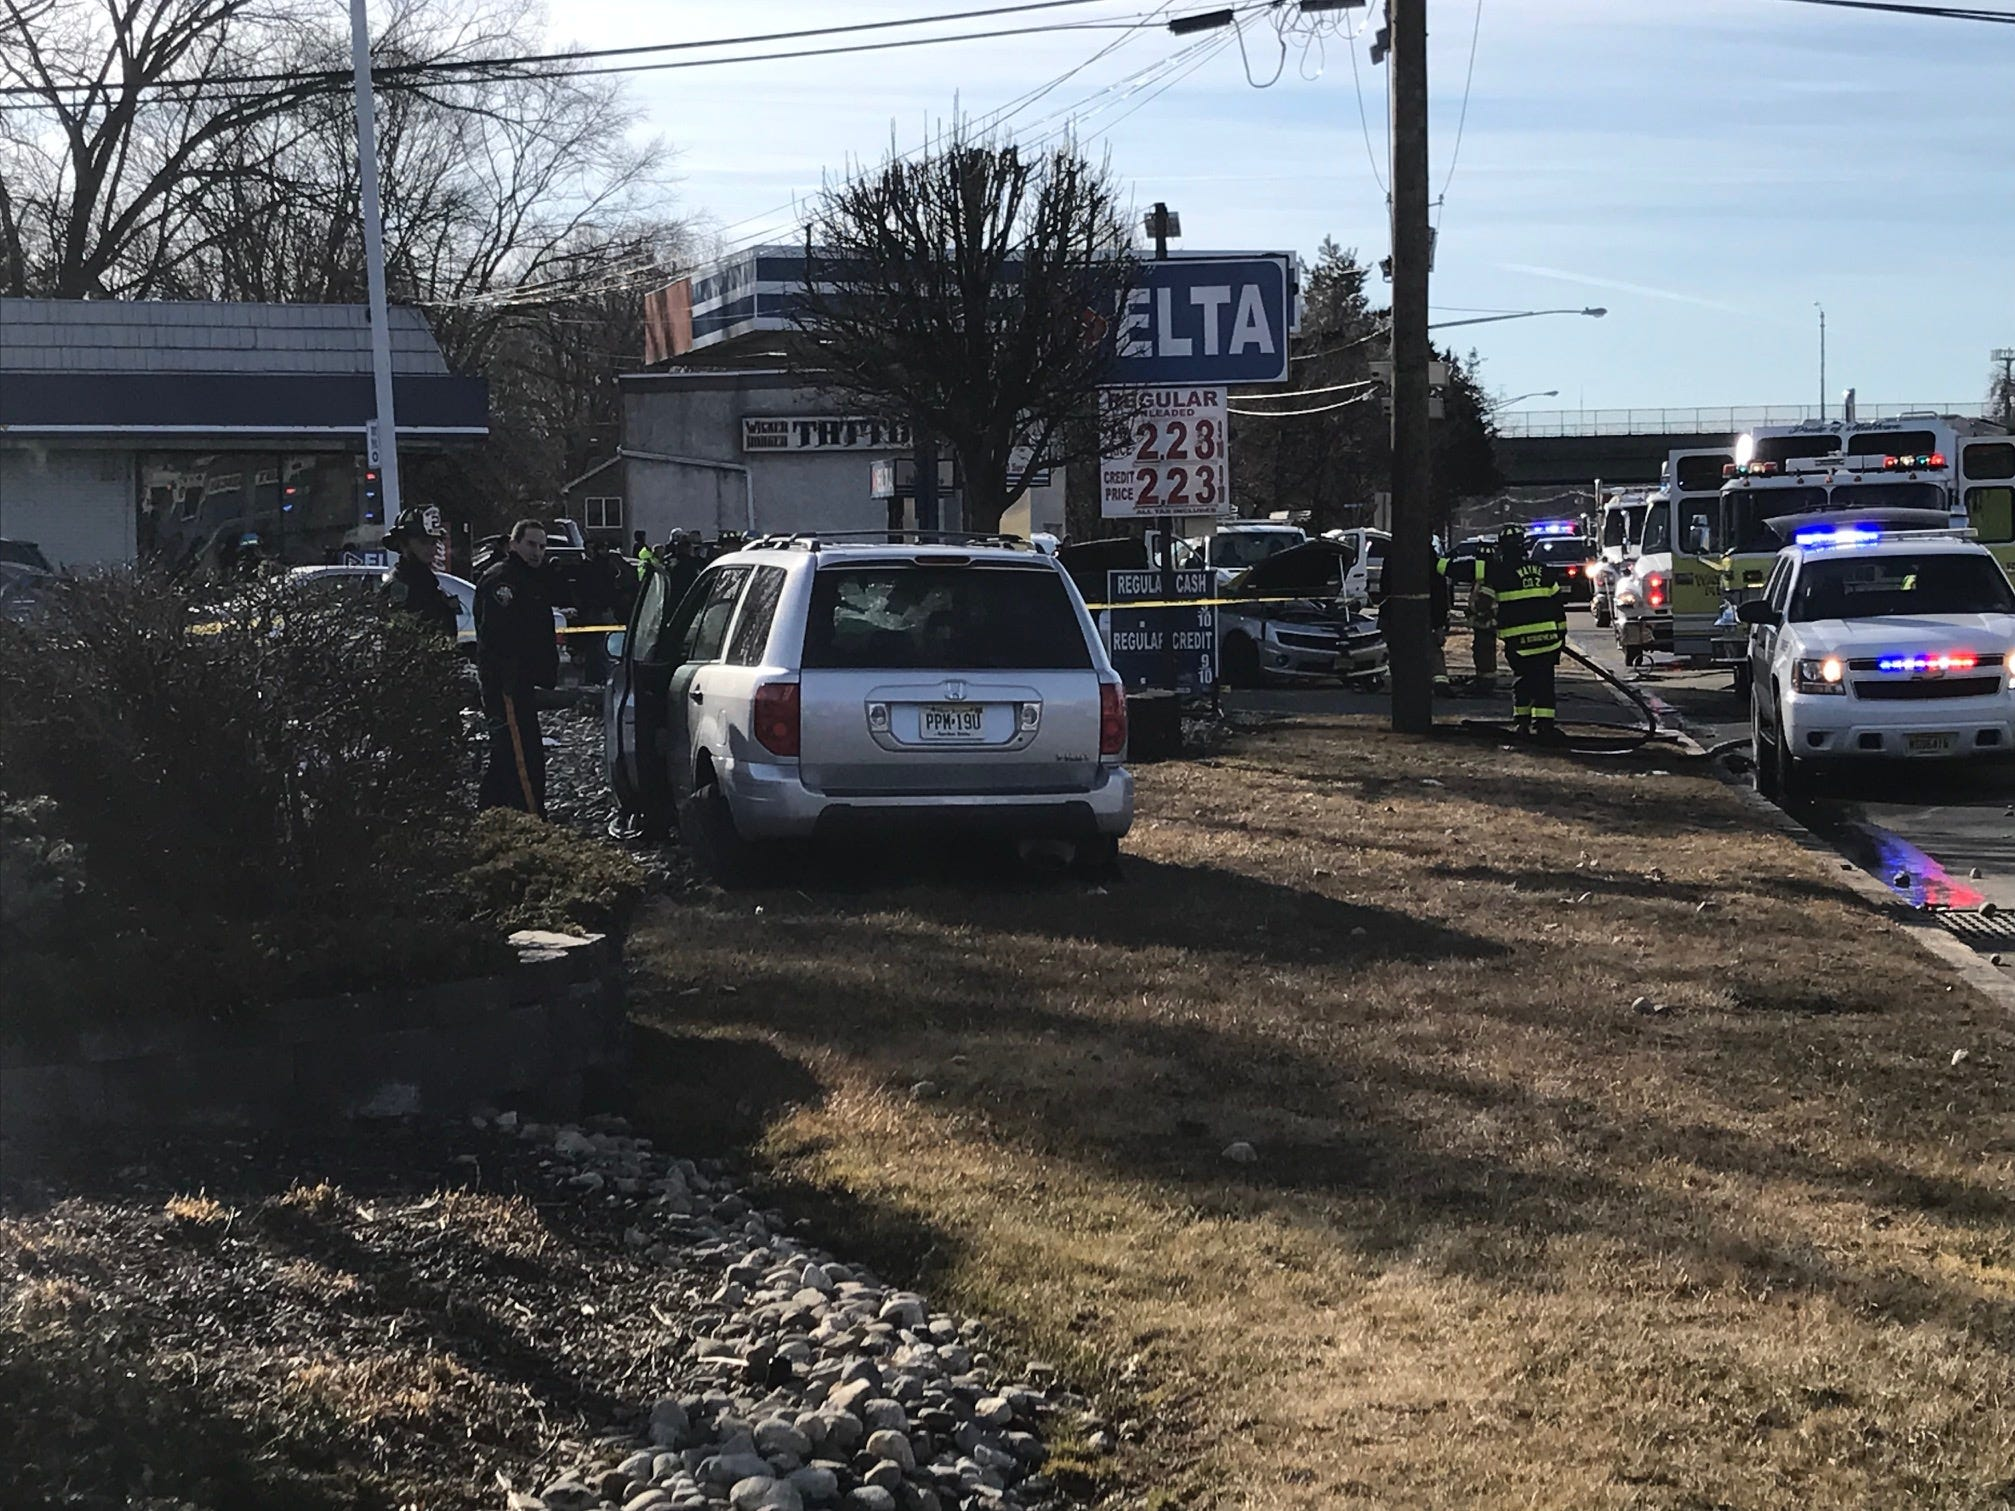 Police observe one of the vehicles involved in a serious car crash at the Delta Gas Station on Route 23 in Wayne.